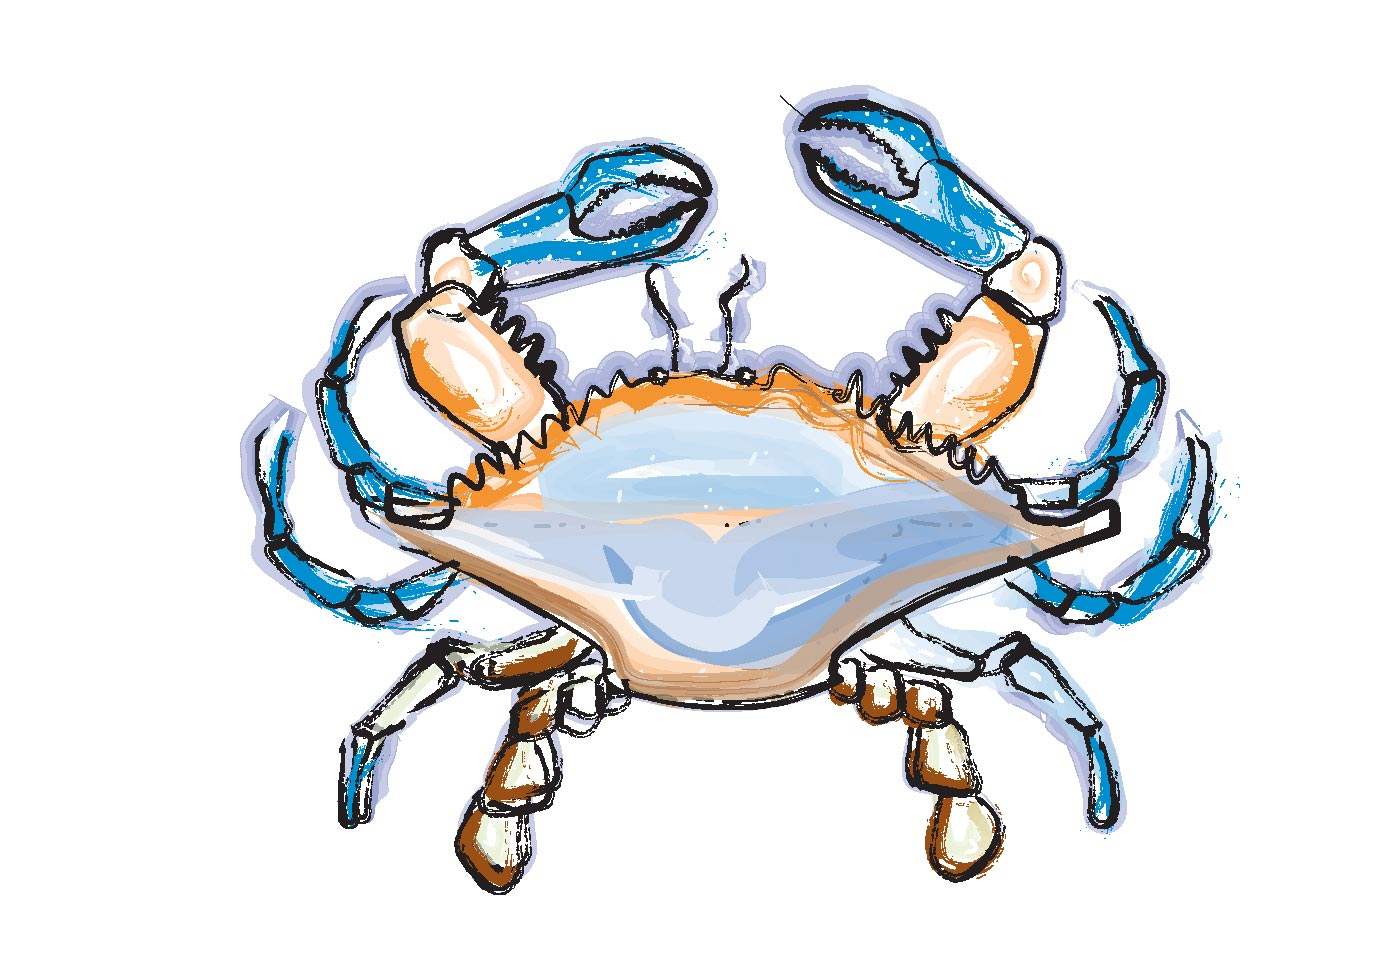 1400x980 Blue Crab Free Vector Art